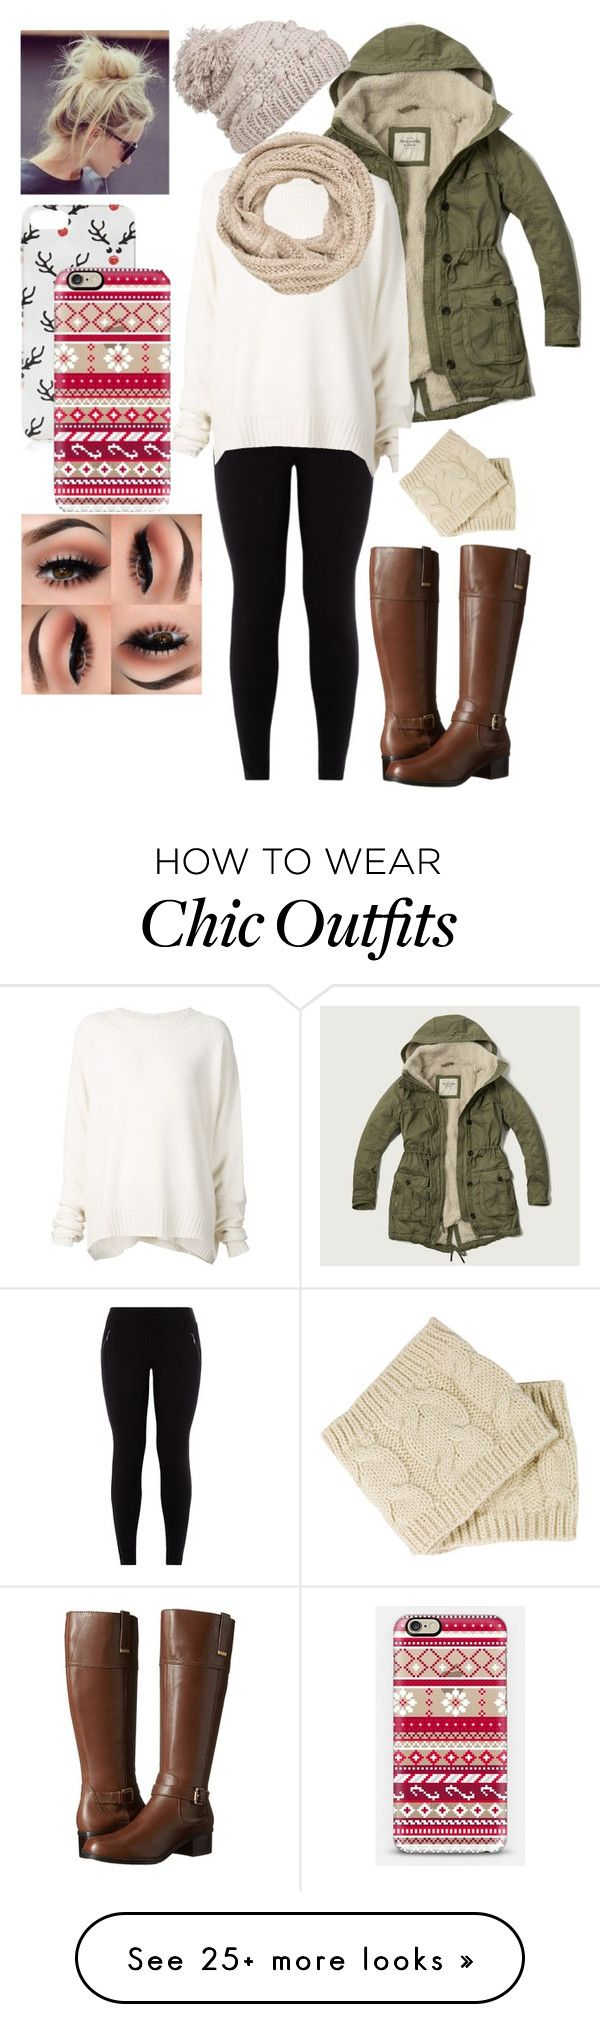 """""""winter"""" by daisy-rebolledo on Polyvore featuring Abercrombie & Fitch, URBAN ZEN, Bandolino, prAna, maurices, Topshop and Casetify"""